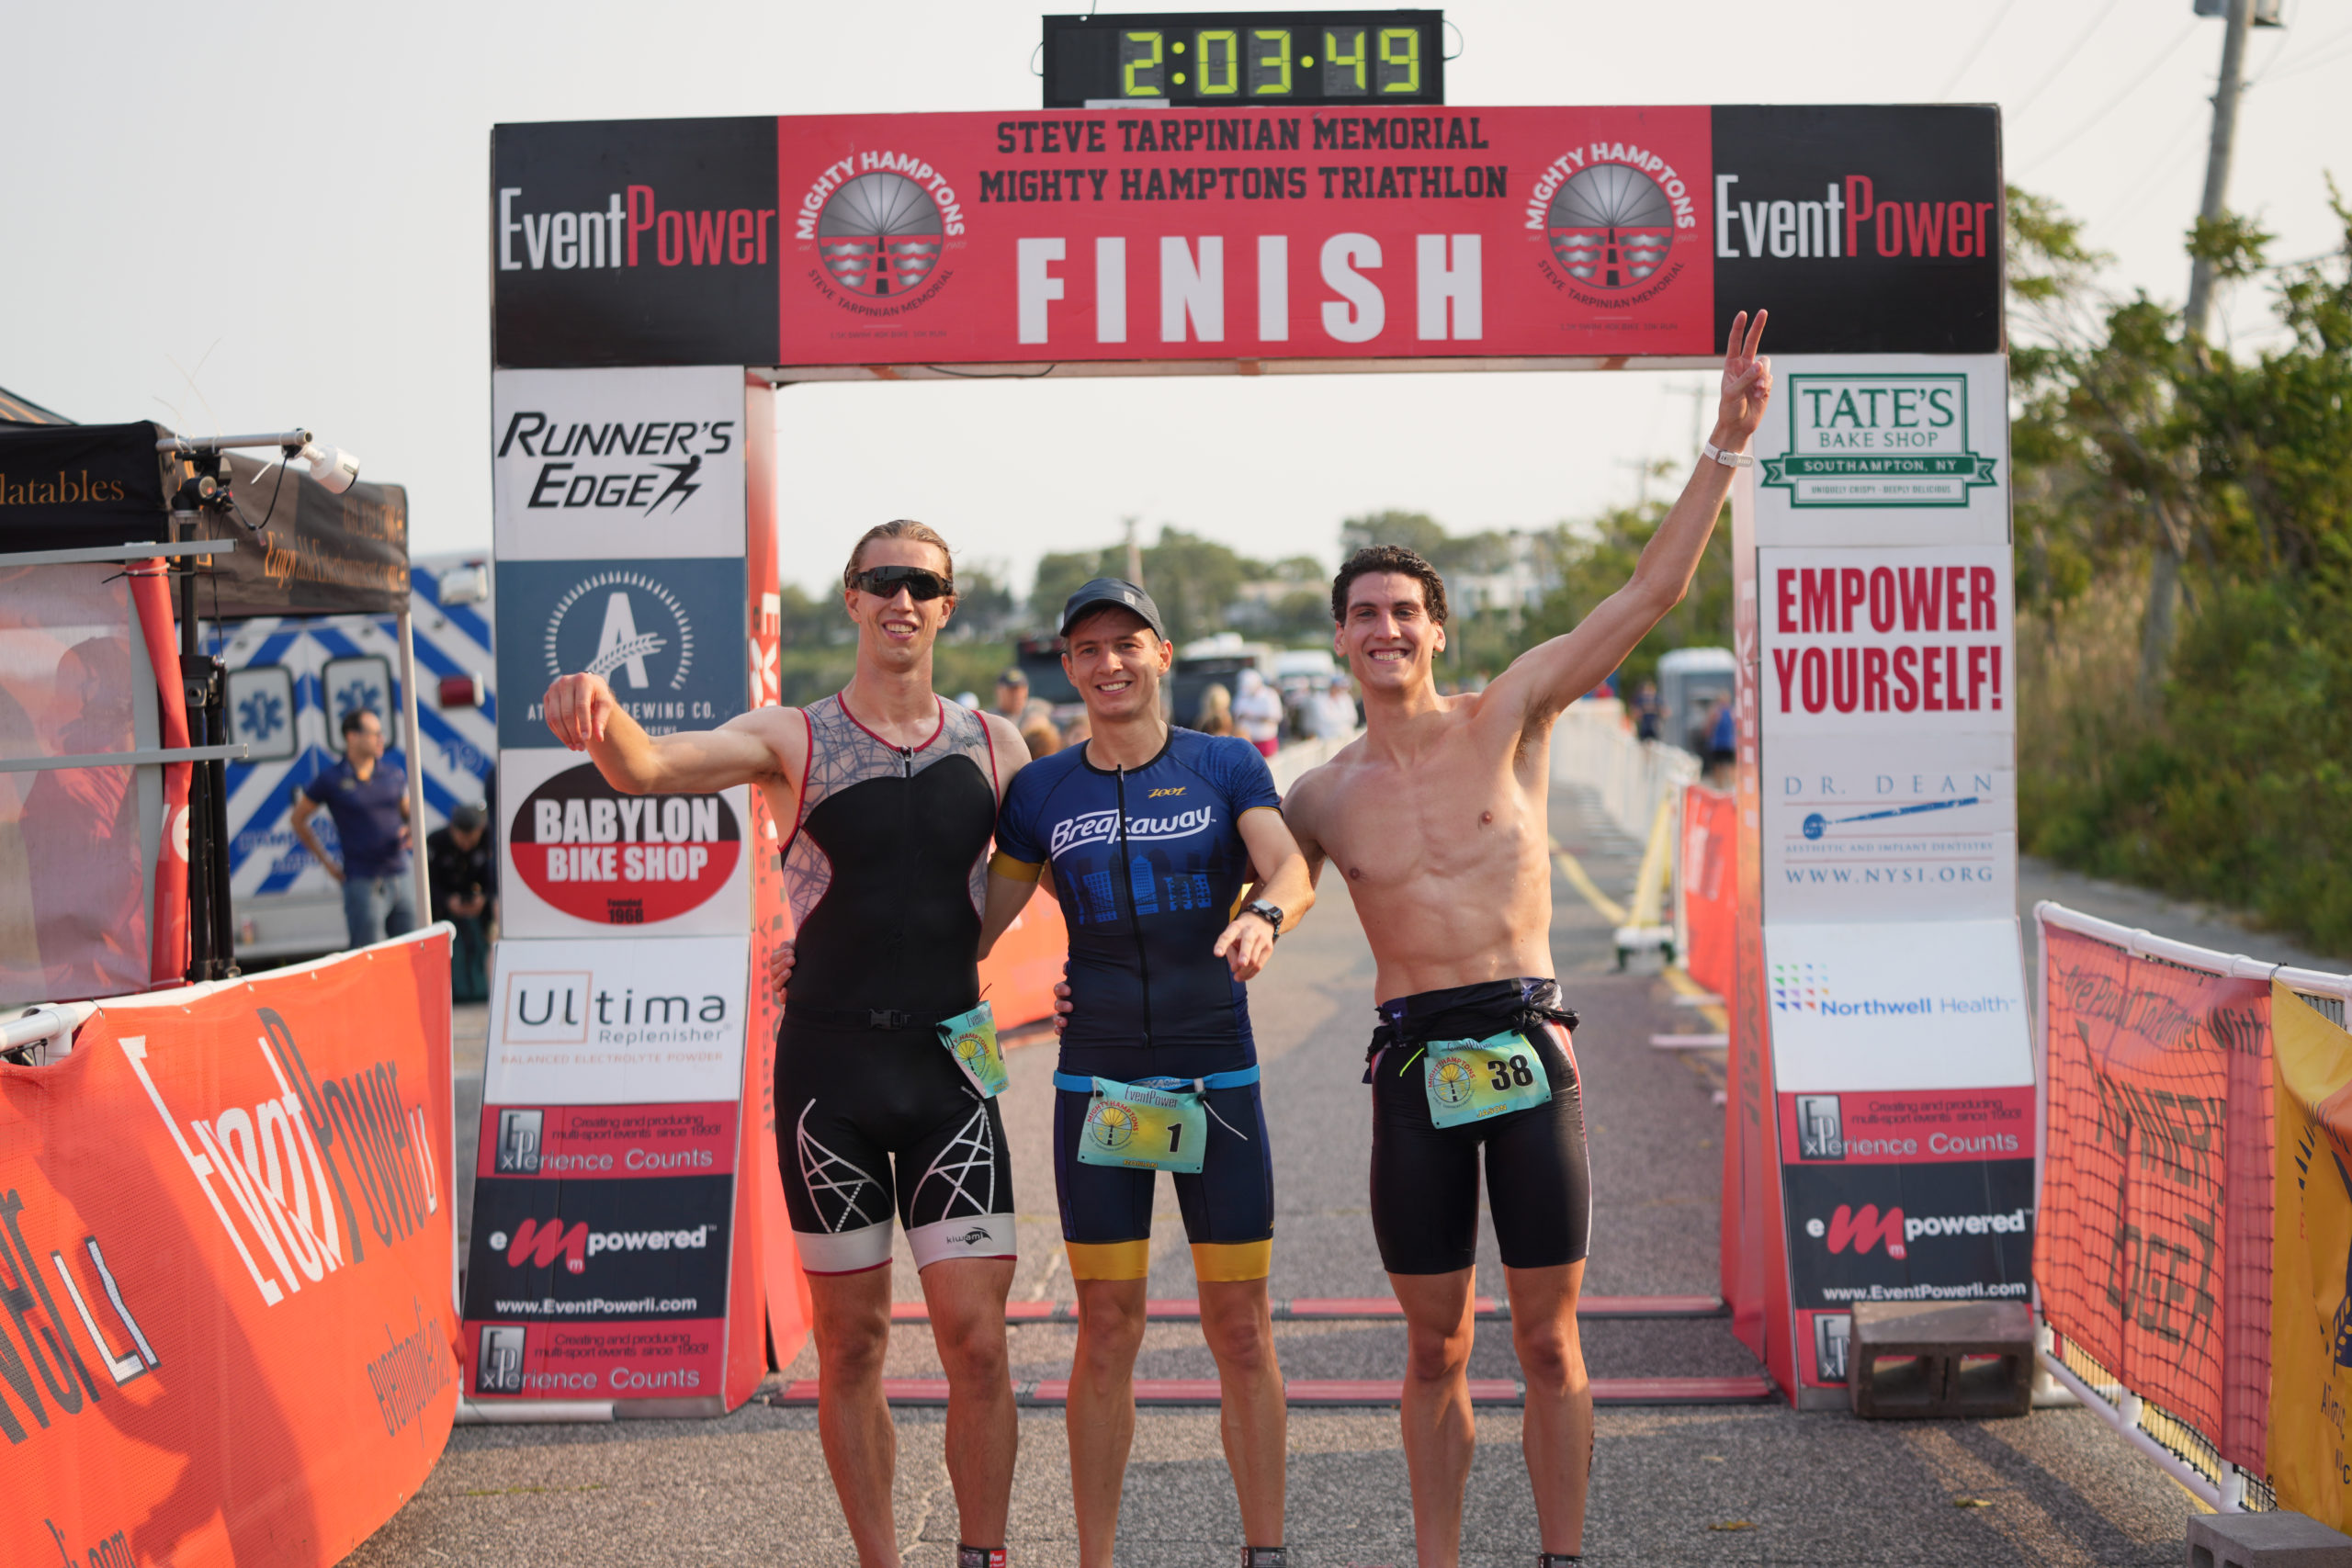 The top three finishers of Sunday morning's Mighty Hamptons Triathlon, from left, Dylan McMurrer, Roman Fedosieiev and Jason Quinn.